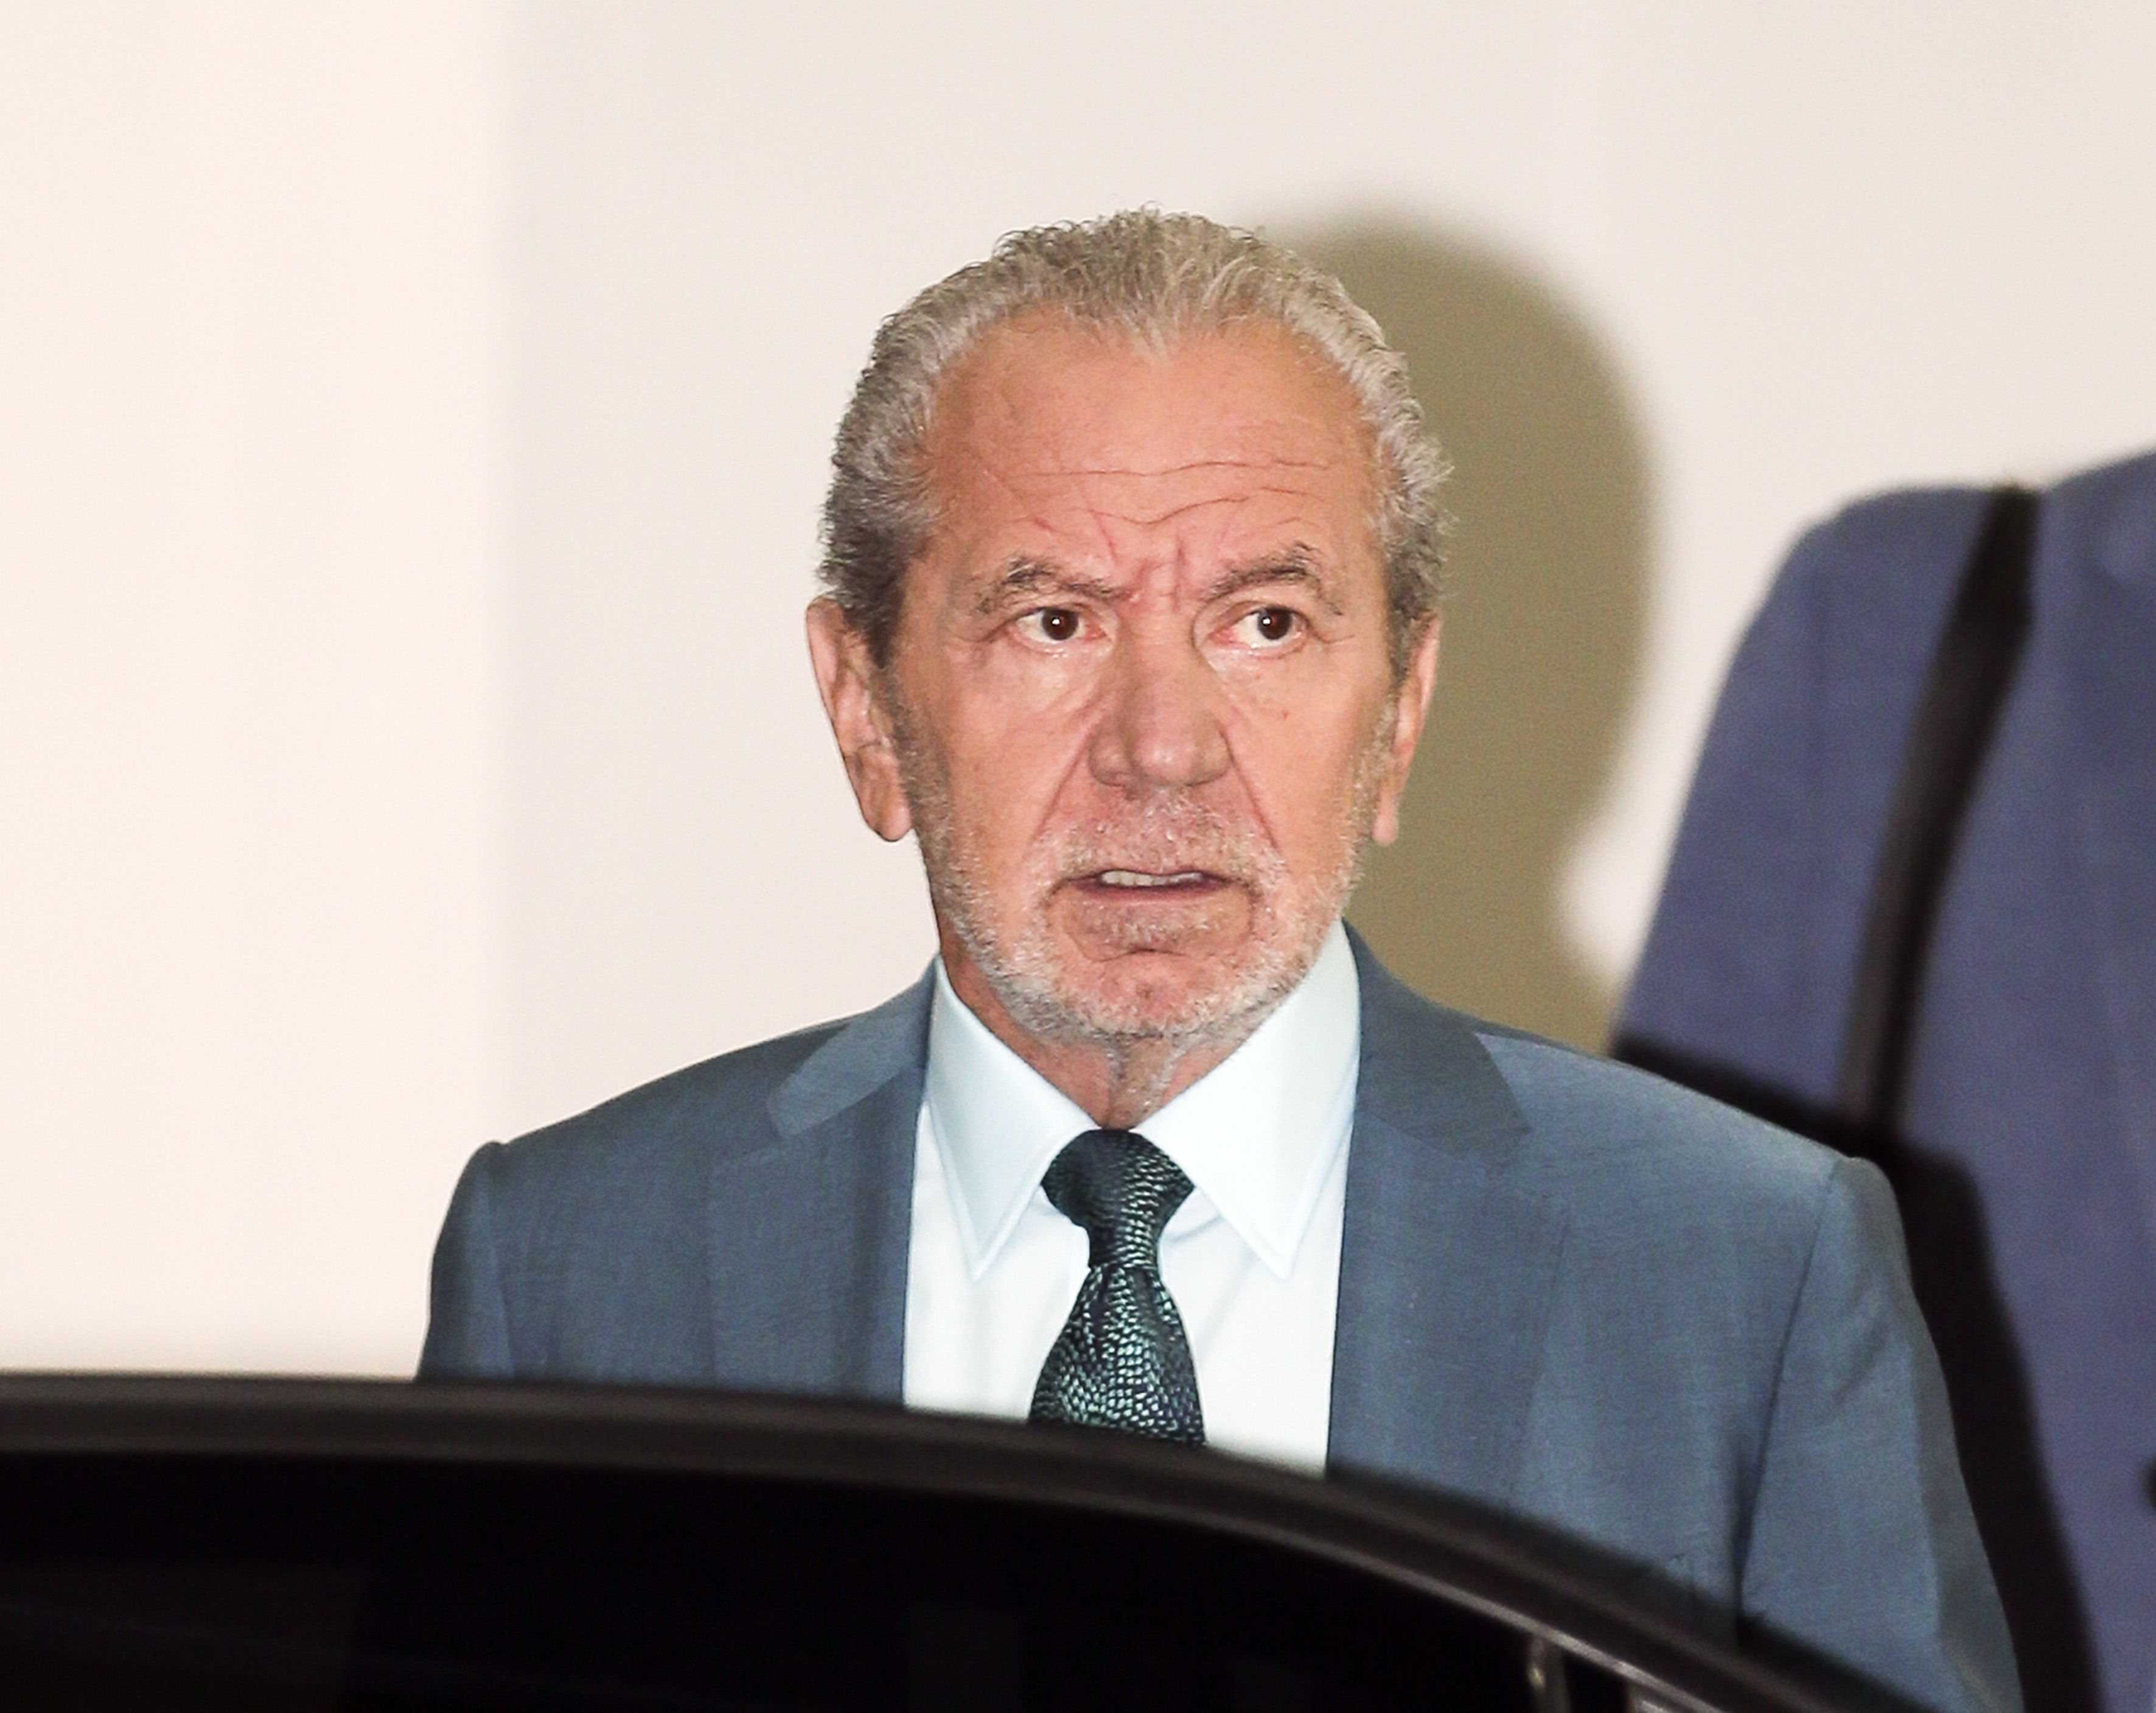 EastEnders 'hires' Lord Sugar as a script writer after he predicts storylines